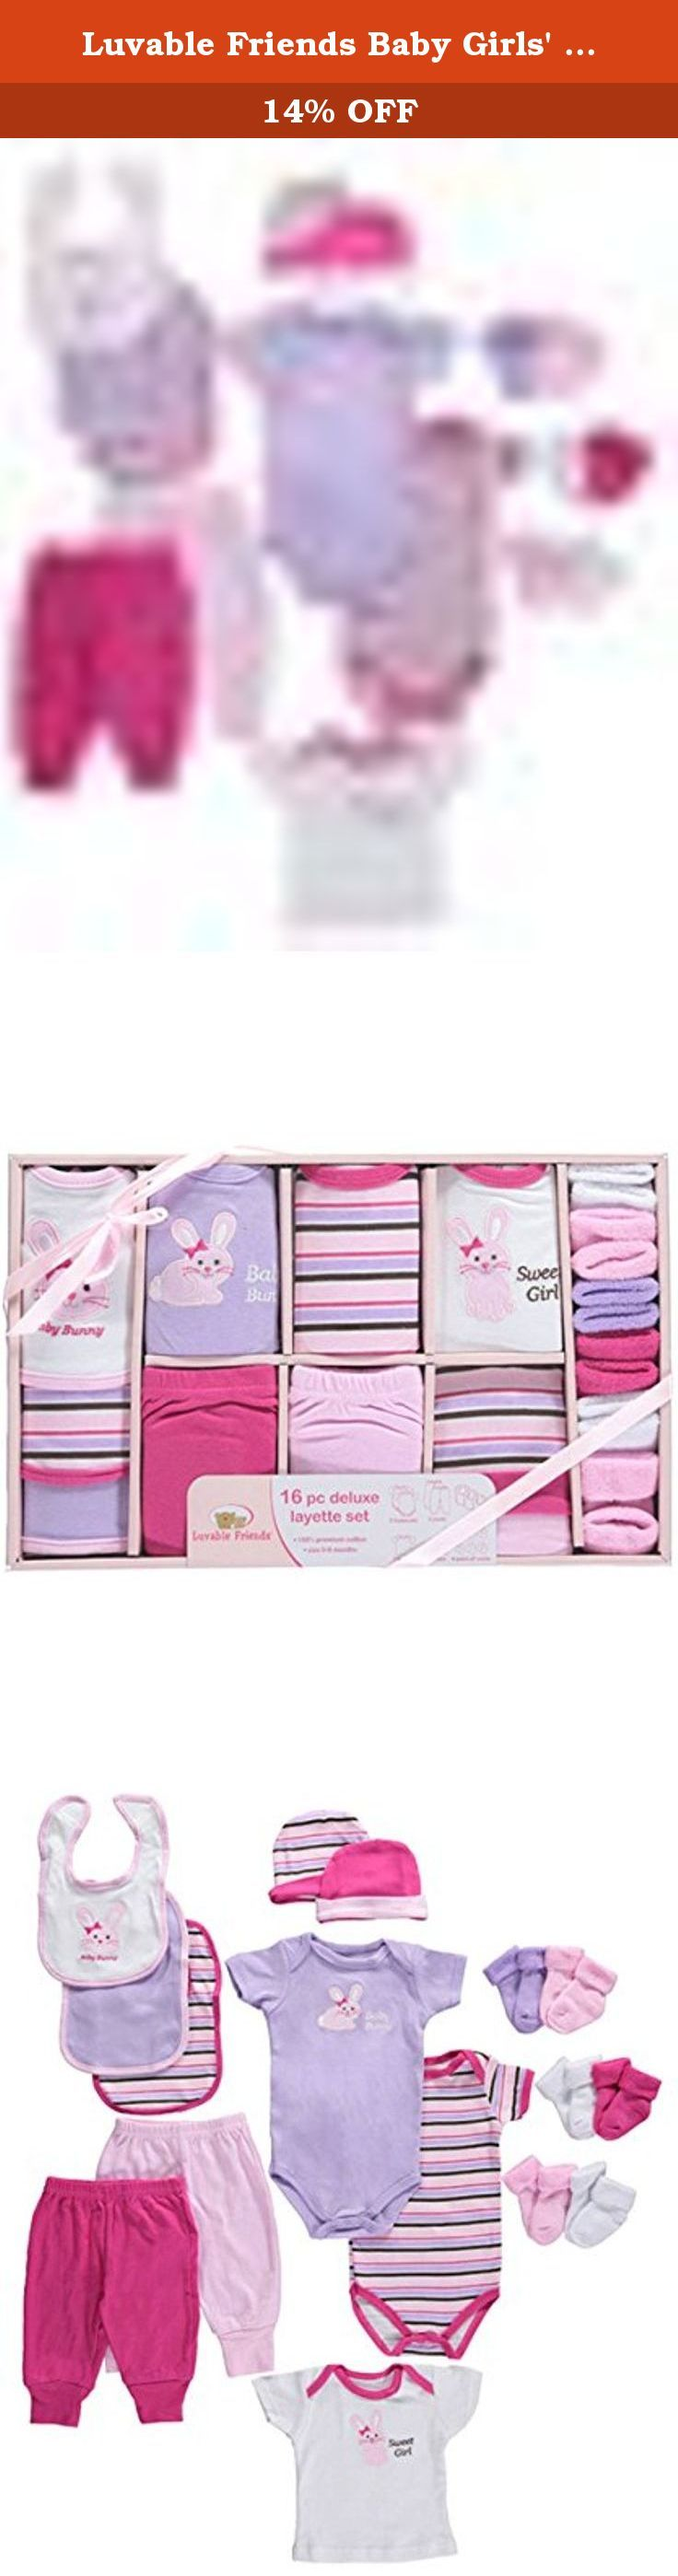 """Luvable Friends Baby Girls' """"Sweet Bunny"""" 16-Piece Layette Set - pink, 0 - 6. Ensure your new arrival has outfits galore with this comprehensive 16-piece set from Luvable Friends. All items are made of the very softest cotton. A variety of patterns and adornments offers great mix-n-match options. The view-thru gift packaging is perfect for showers. Includes: 2 Bodysuits (100% Cotton) 2 Pants (100% Cotton) 3 Bibs (100% Cotton) 1 T-Shirt (100% Cotton) 2 Caps (100% Cotton) 6 Socks (100%…"""